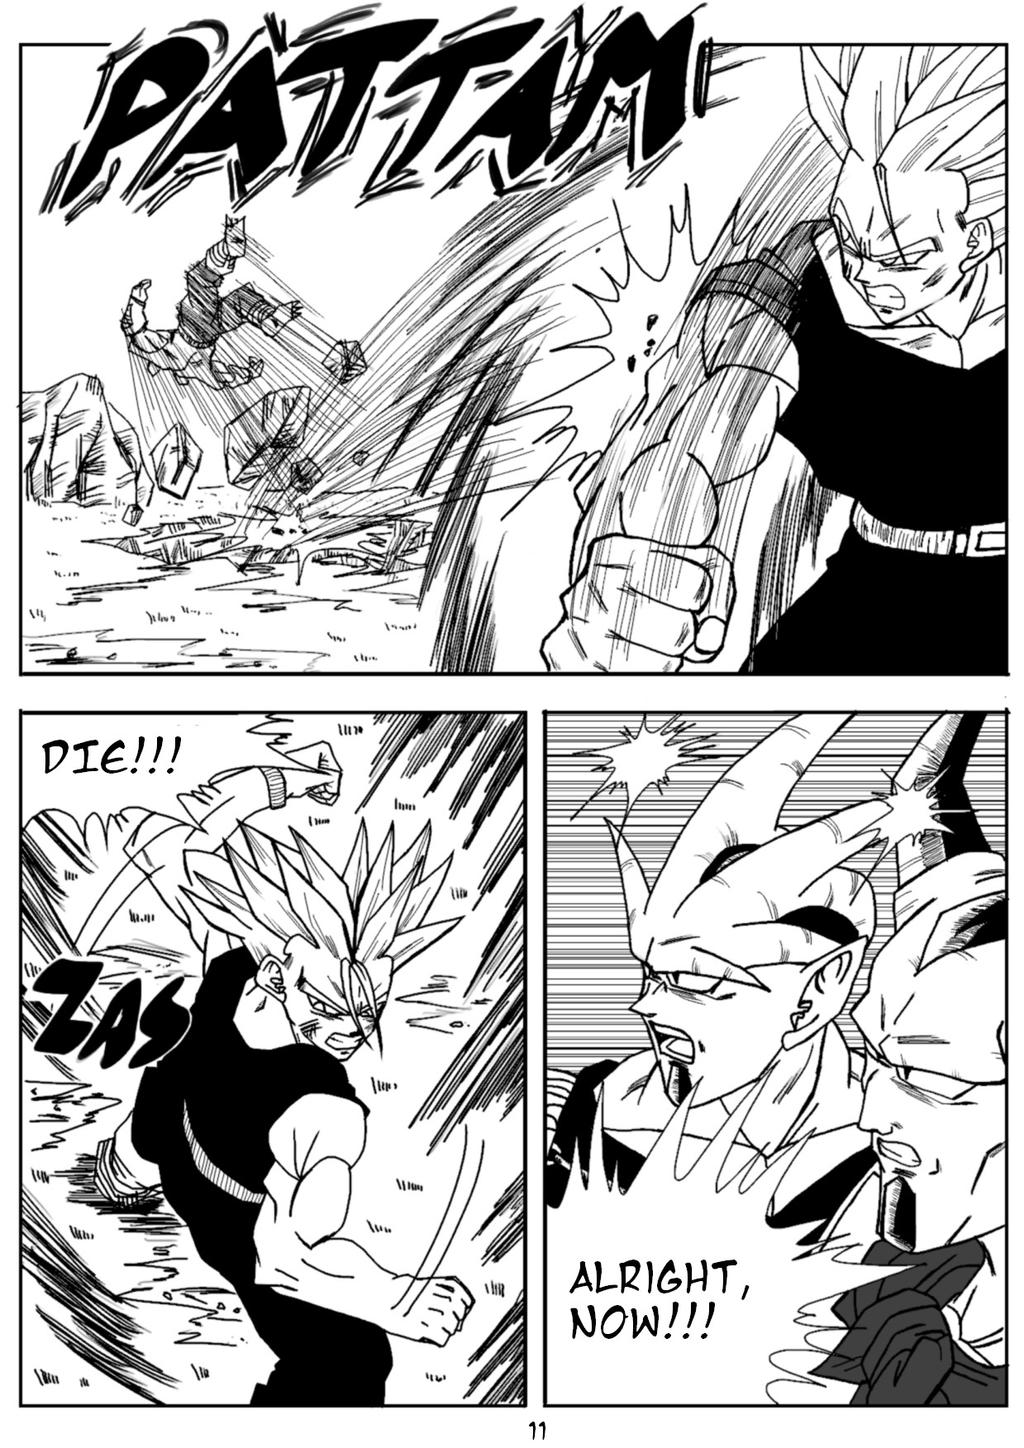 db fan manga